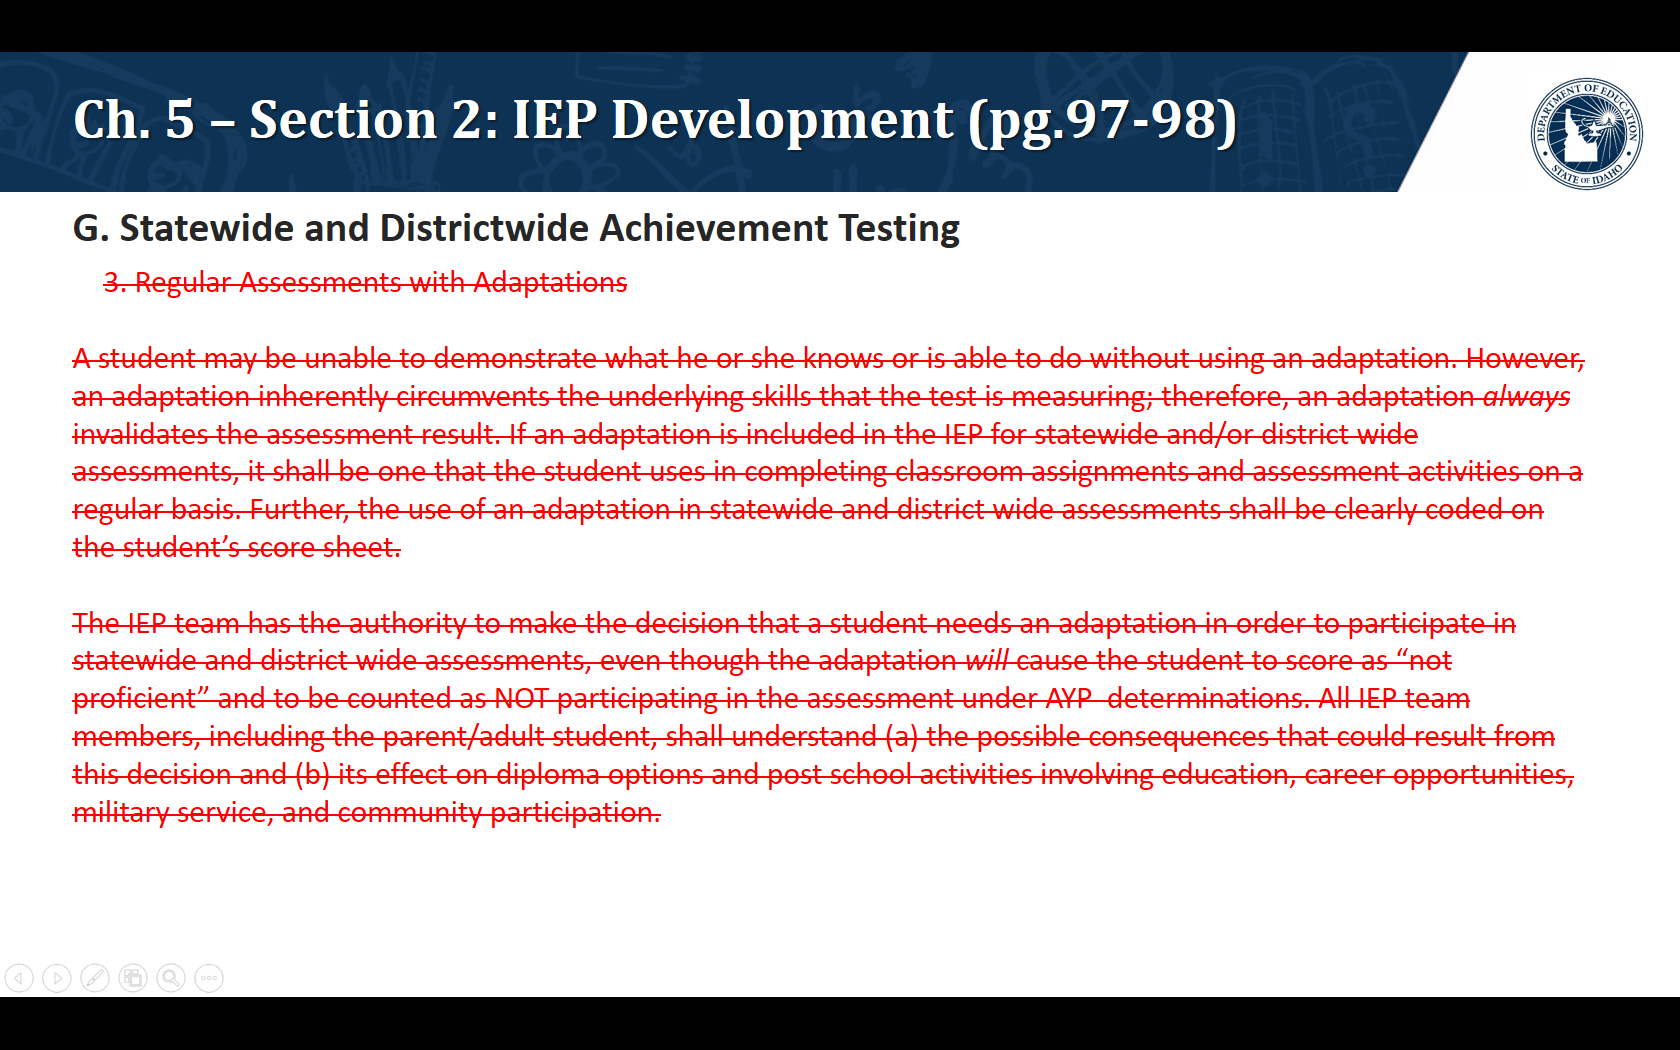 """G. Statewide and Districtwide Achievement Testing. We are proposing the removal of the following text: 3. Regular Assessments with Adaptations   A student may be unable to demonstrate what he or she knows or is able to do without using an adaptation. However, an adaptation inherently circumvents the underlying skills that the test is measuring; therefore, an adaptation always invalidates the assessment result. If an adaptation is included in the IEP for statewide and/or district wide assessments, it shall be one that the student uses in completing classroom assignments and assessment activities on a regular basis. Further, the use of an adaptation in statewide and district wide assessments shall be clearly coded on the student's score sheet.  The IEP team has the authority to make the decision that a student needs an adaptation in order to participate in statewide and district wide assessments, even though the adaptation will cause the student to score as """"not proficient"""" and to be counted as NOT participating in the assessment under AYP determinations. All IEP team members, including the parent/adult student, shall understand (a) the possible consequences that could result from this decision and (b) its effect on diploma options and post school activities involving education, career opportunities, military service, and community participation."""